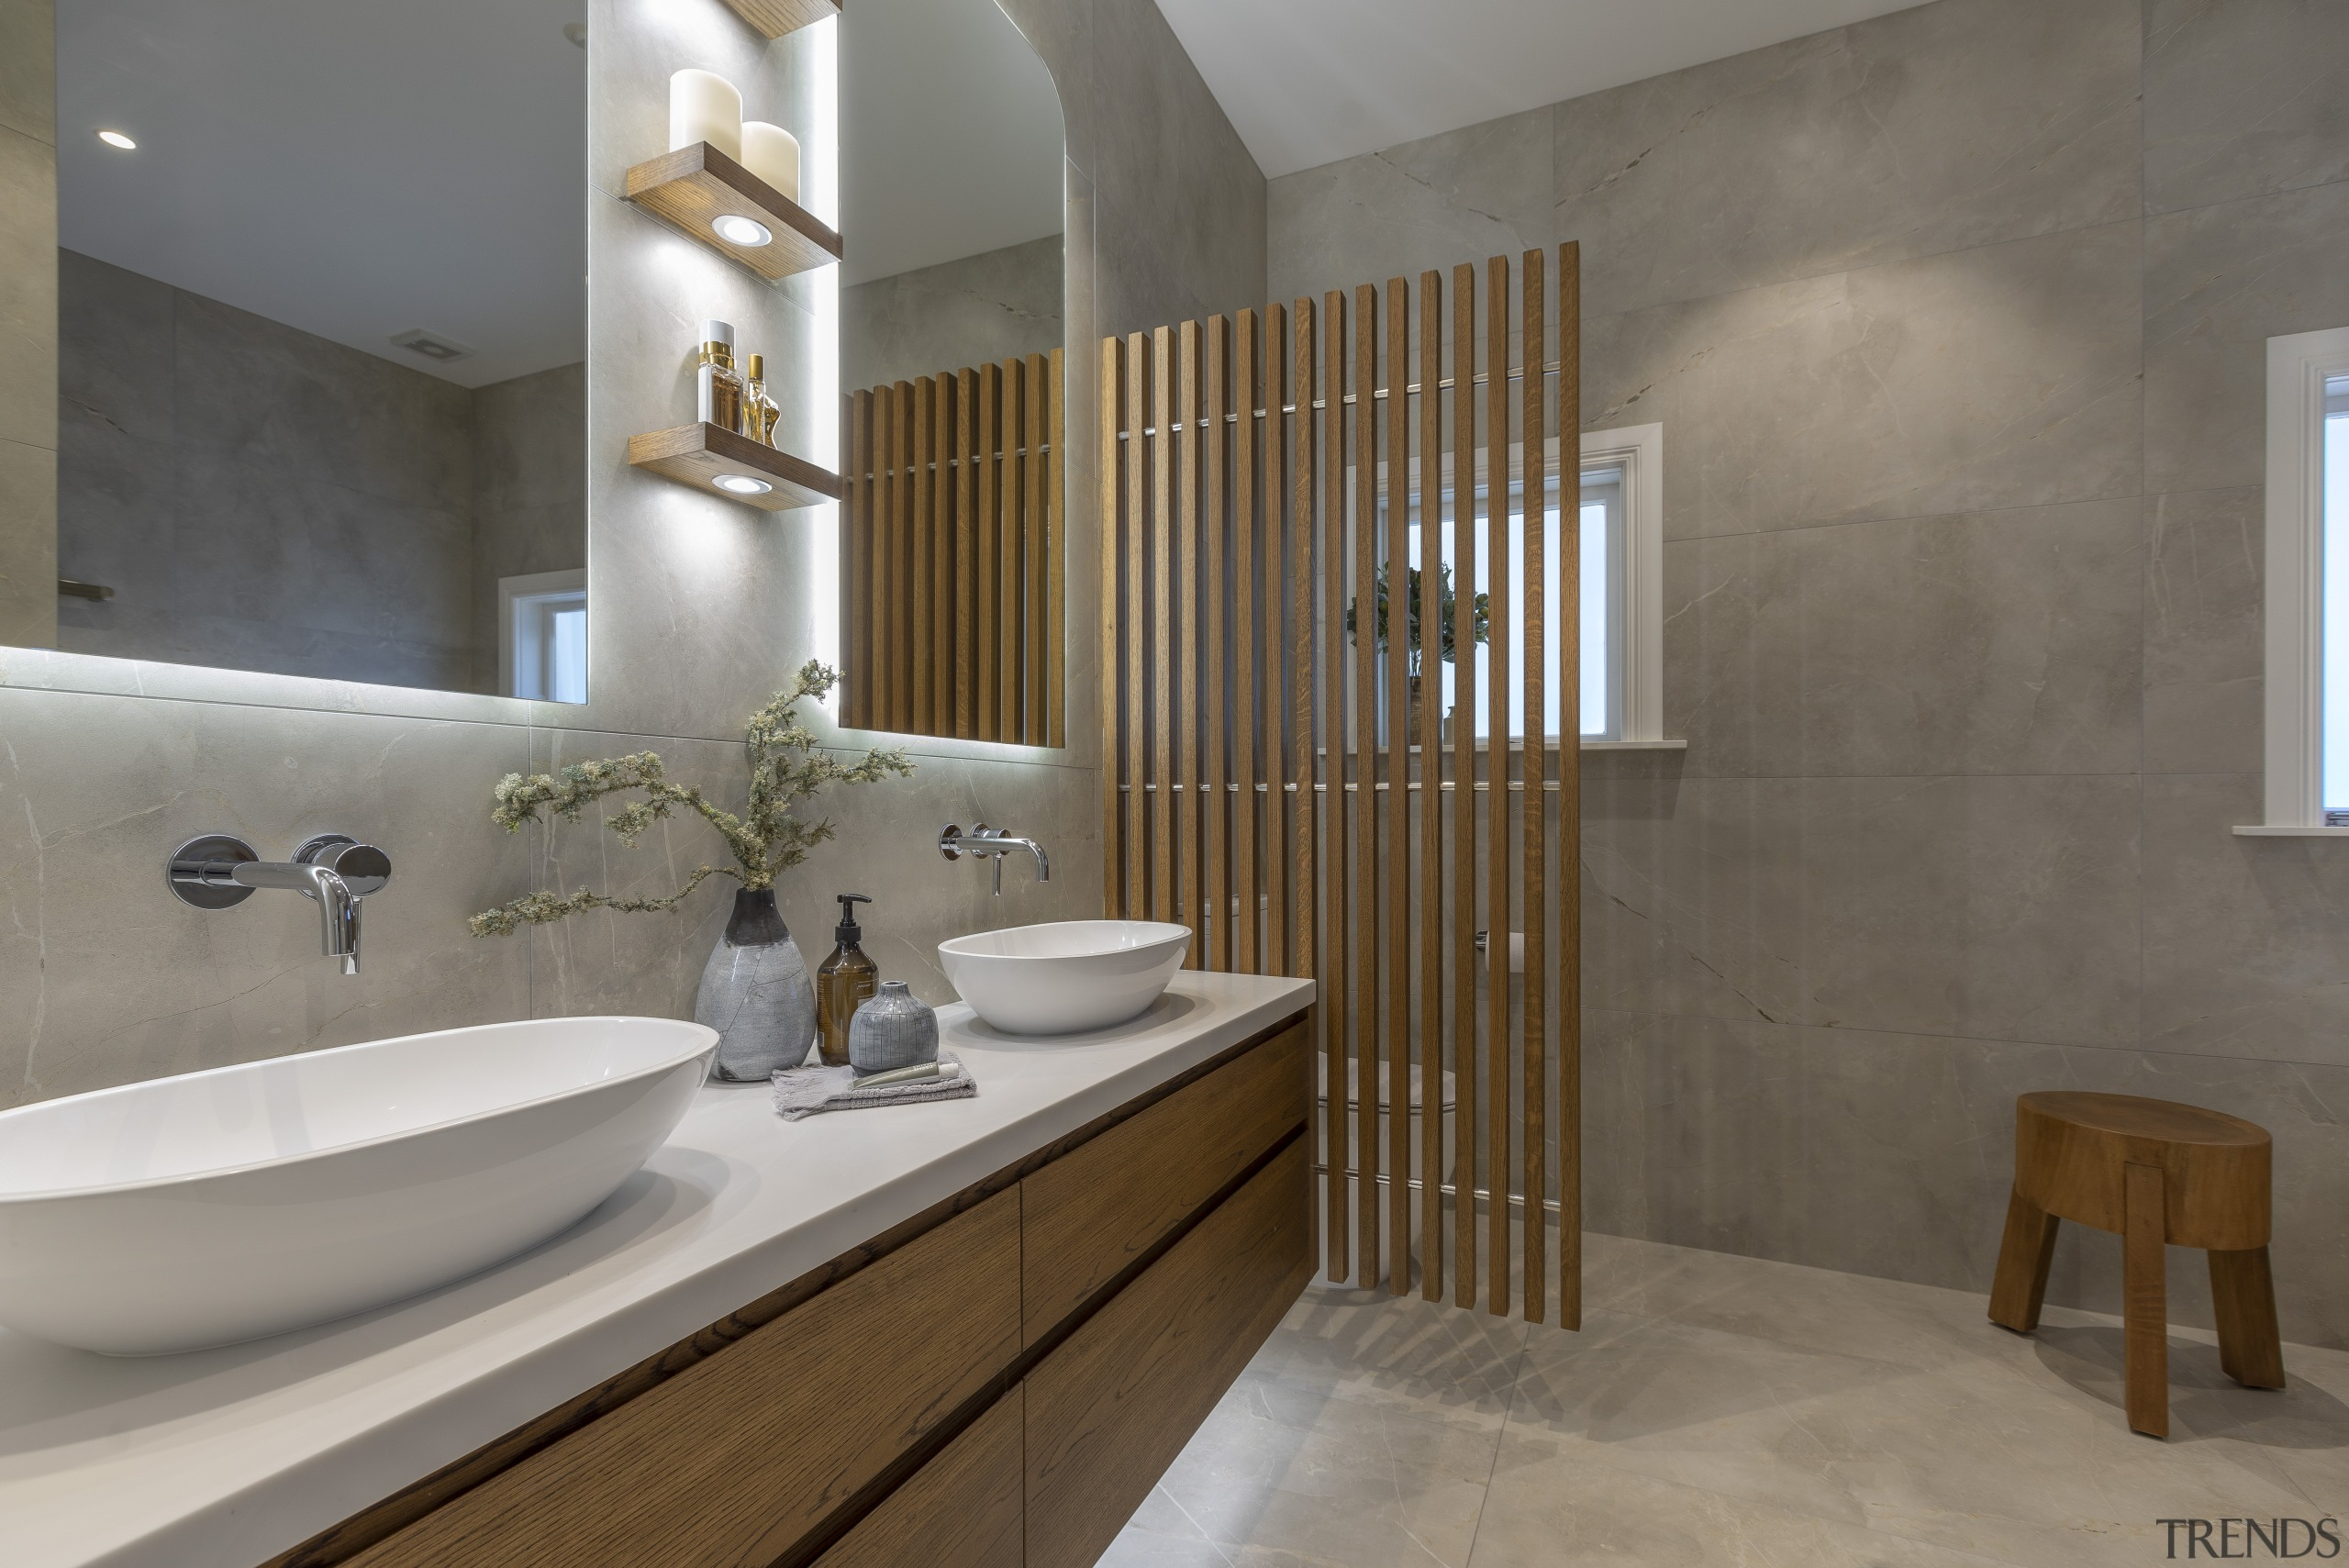 Small display shelves are underlit in this bathroom gray